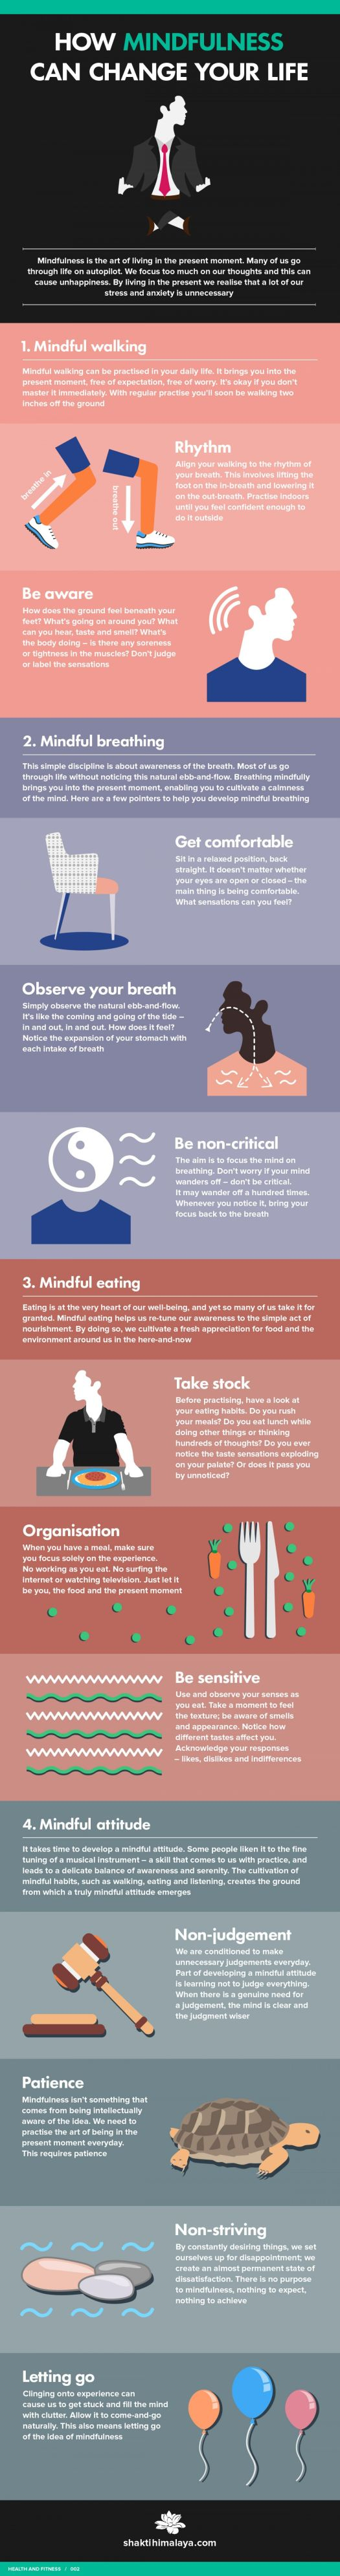 How Mindfulness Can Change Your Life #infographic